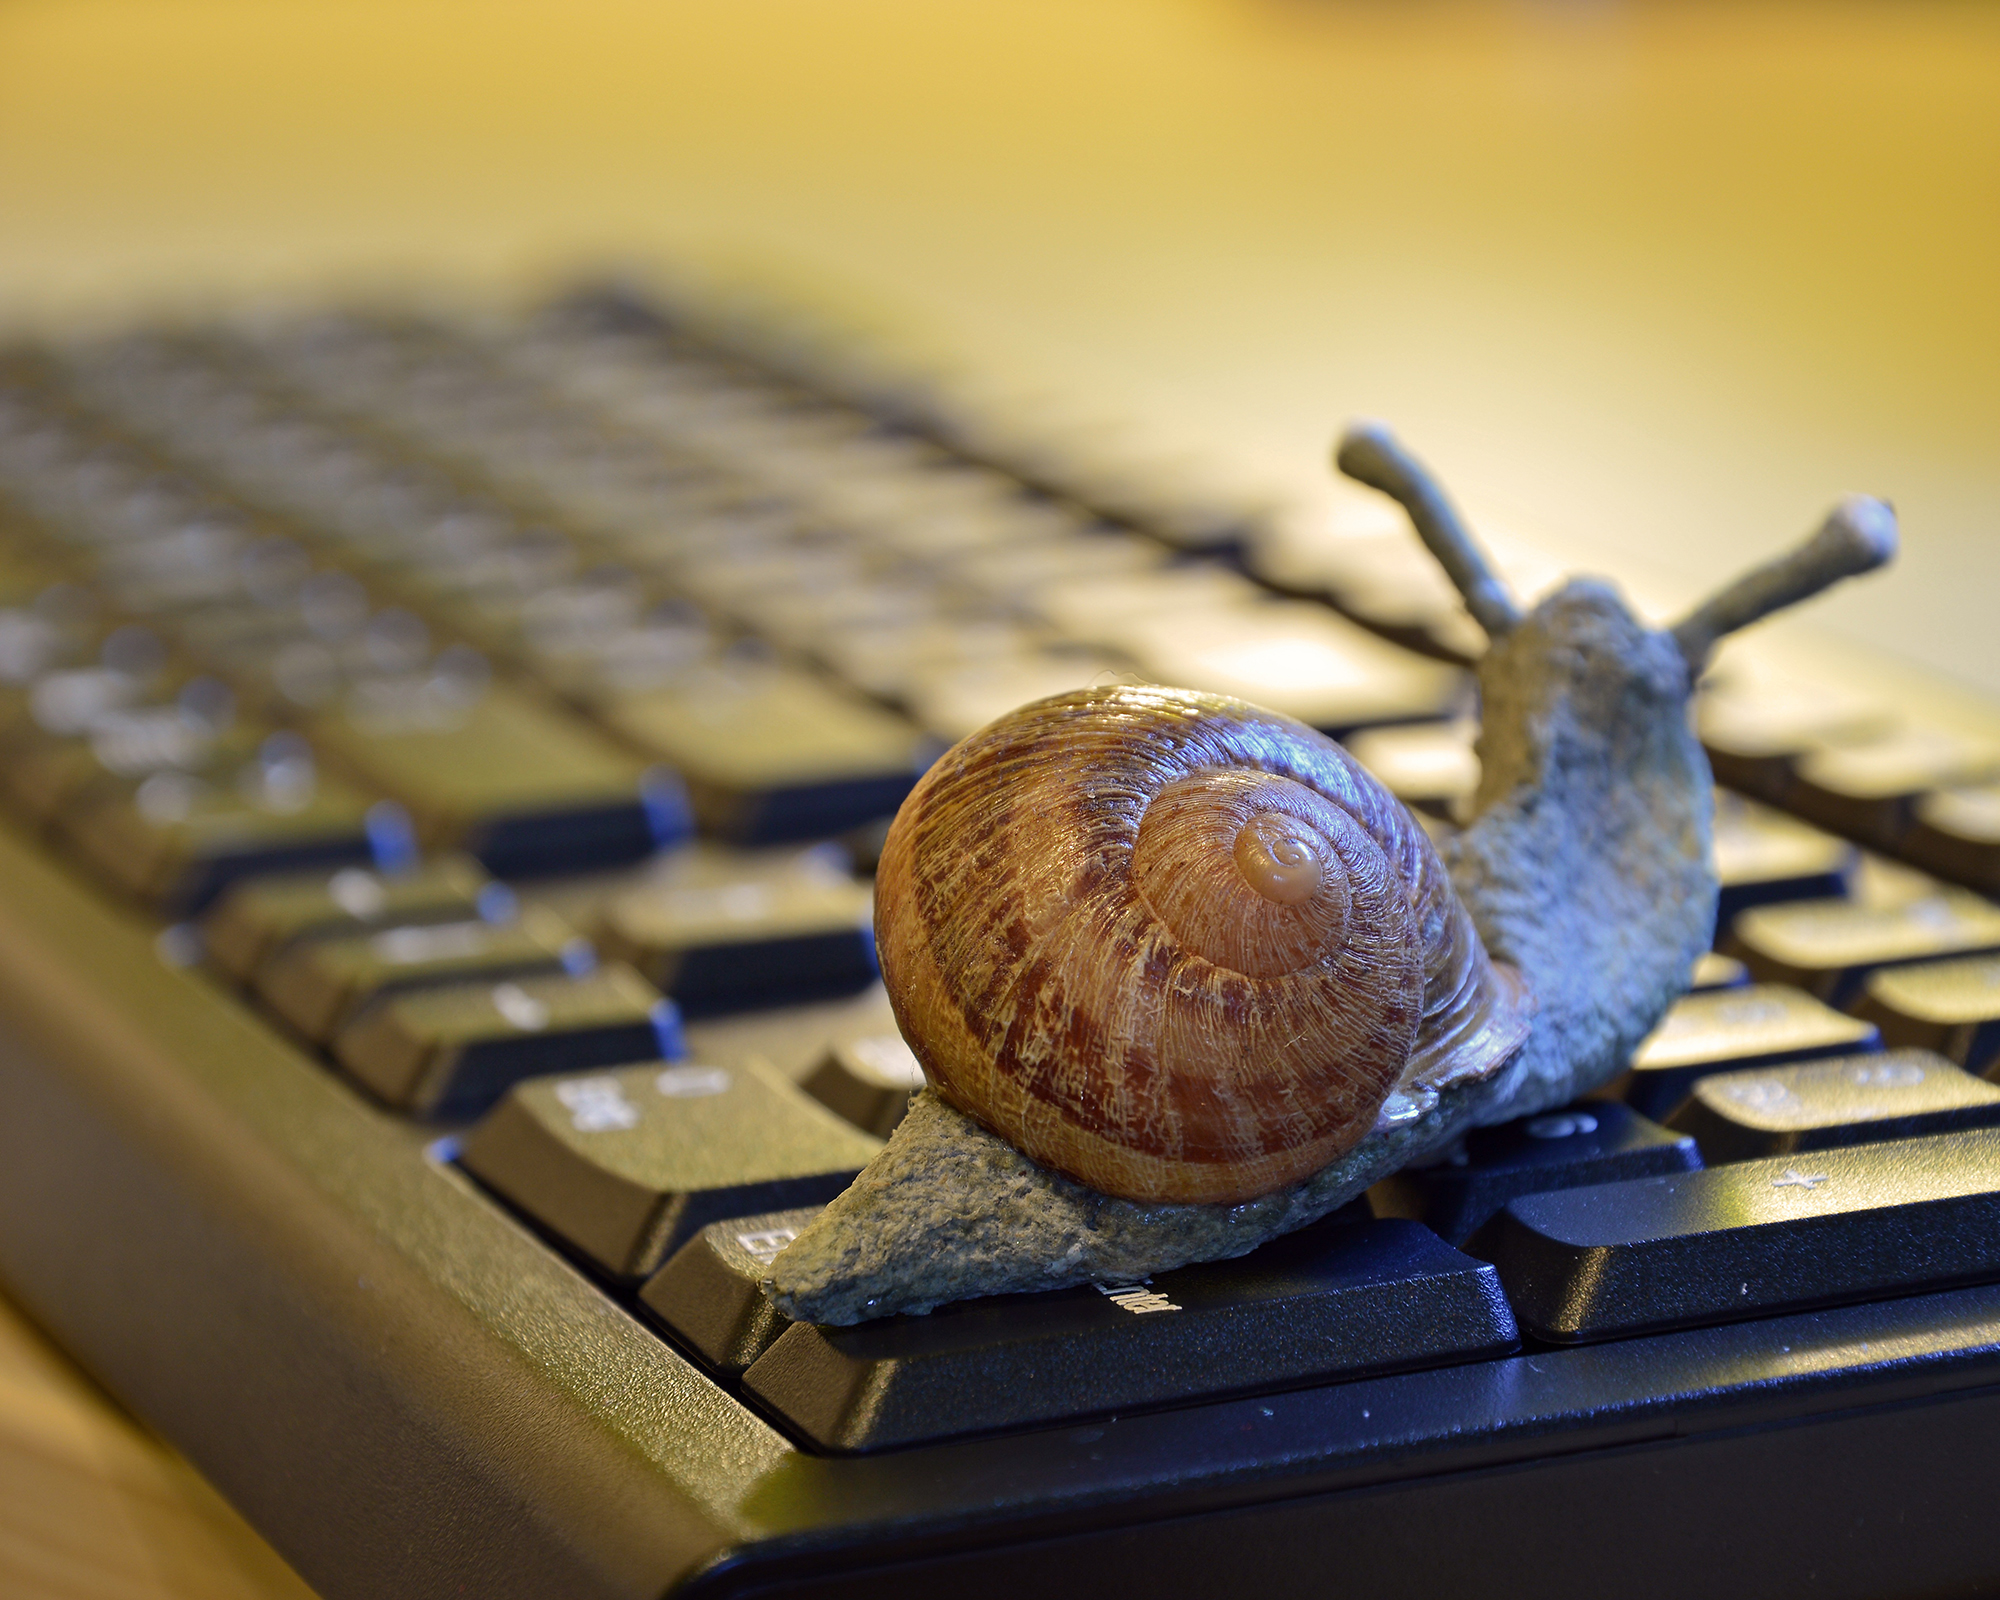 Important Lessons Authorpreneurs Can Learn from a Snail: Part 2